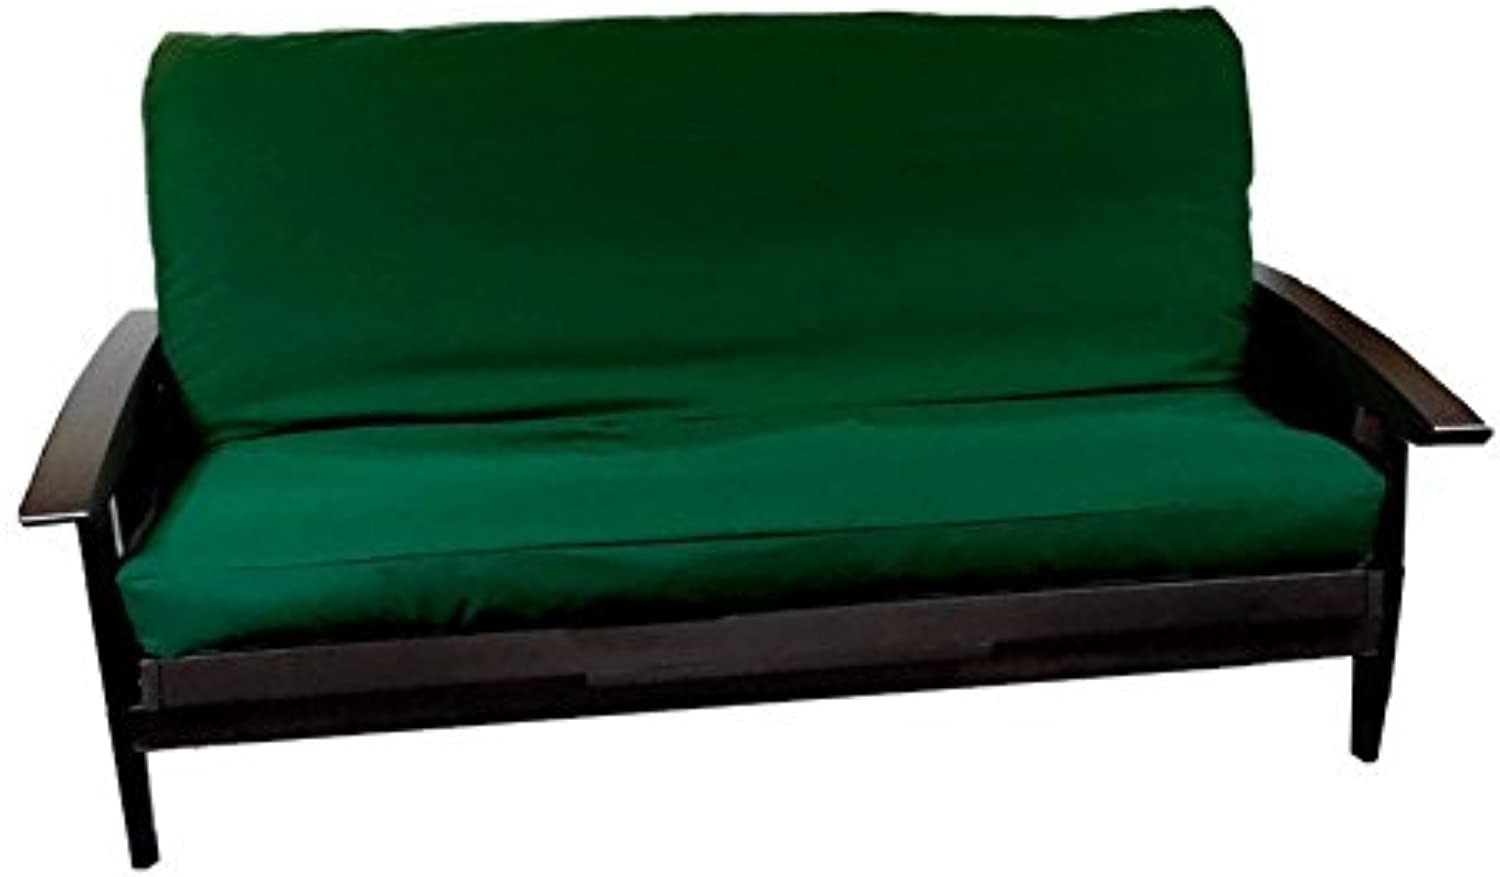 Futon Cover with 3 Sided Zipper - Factory Direct - Full or Queen - Solid colors - Premium Cotton Polyester Blend - Futon Mattress Cover (Hunter Green, Full (Fits 6  to 8  Mattress))